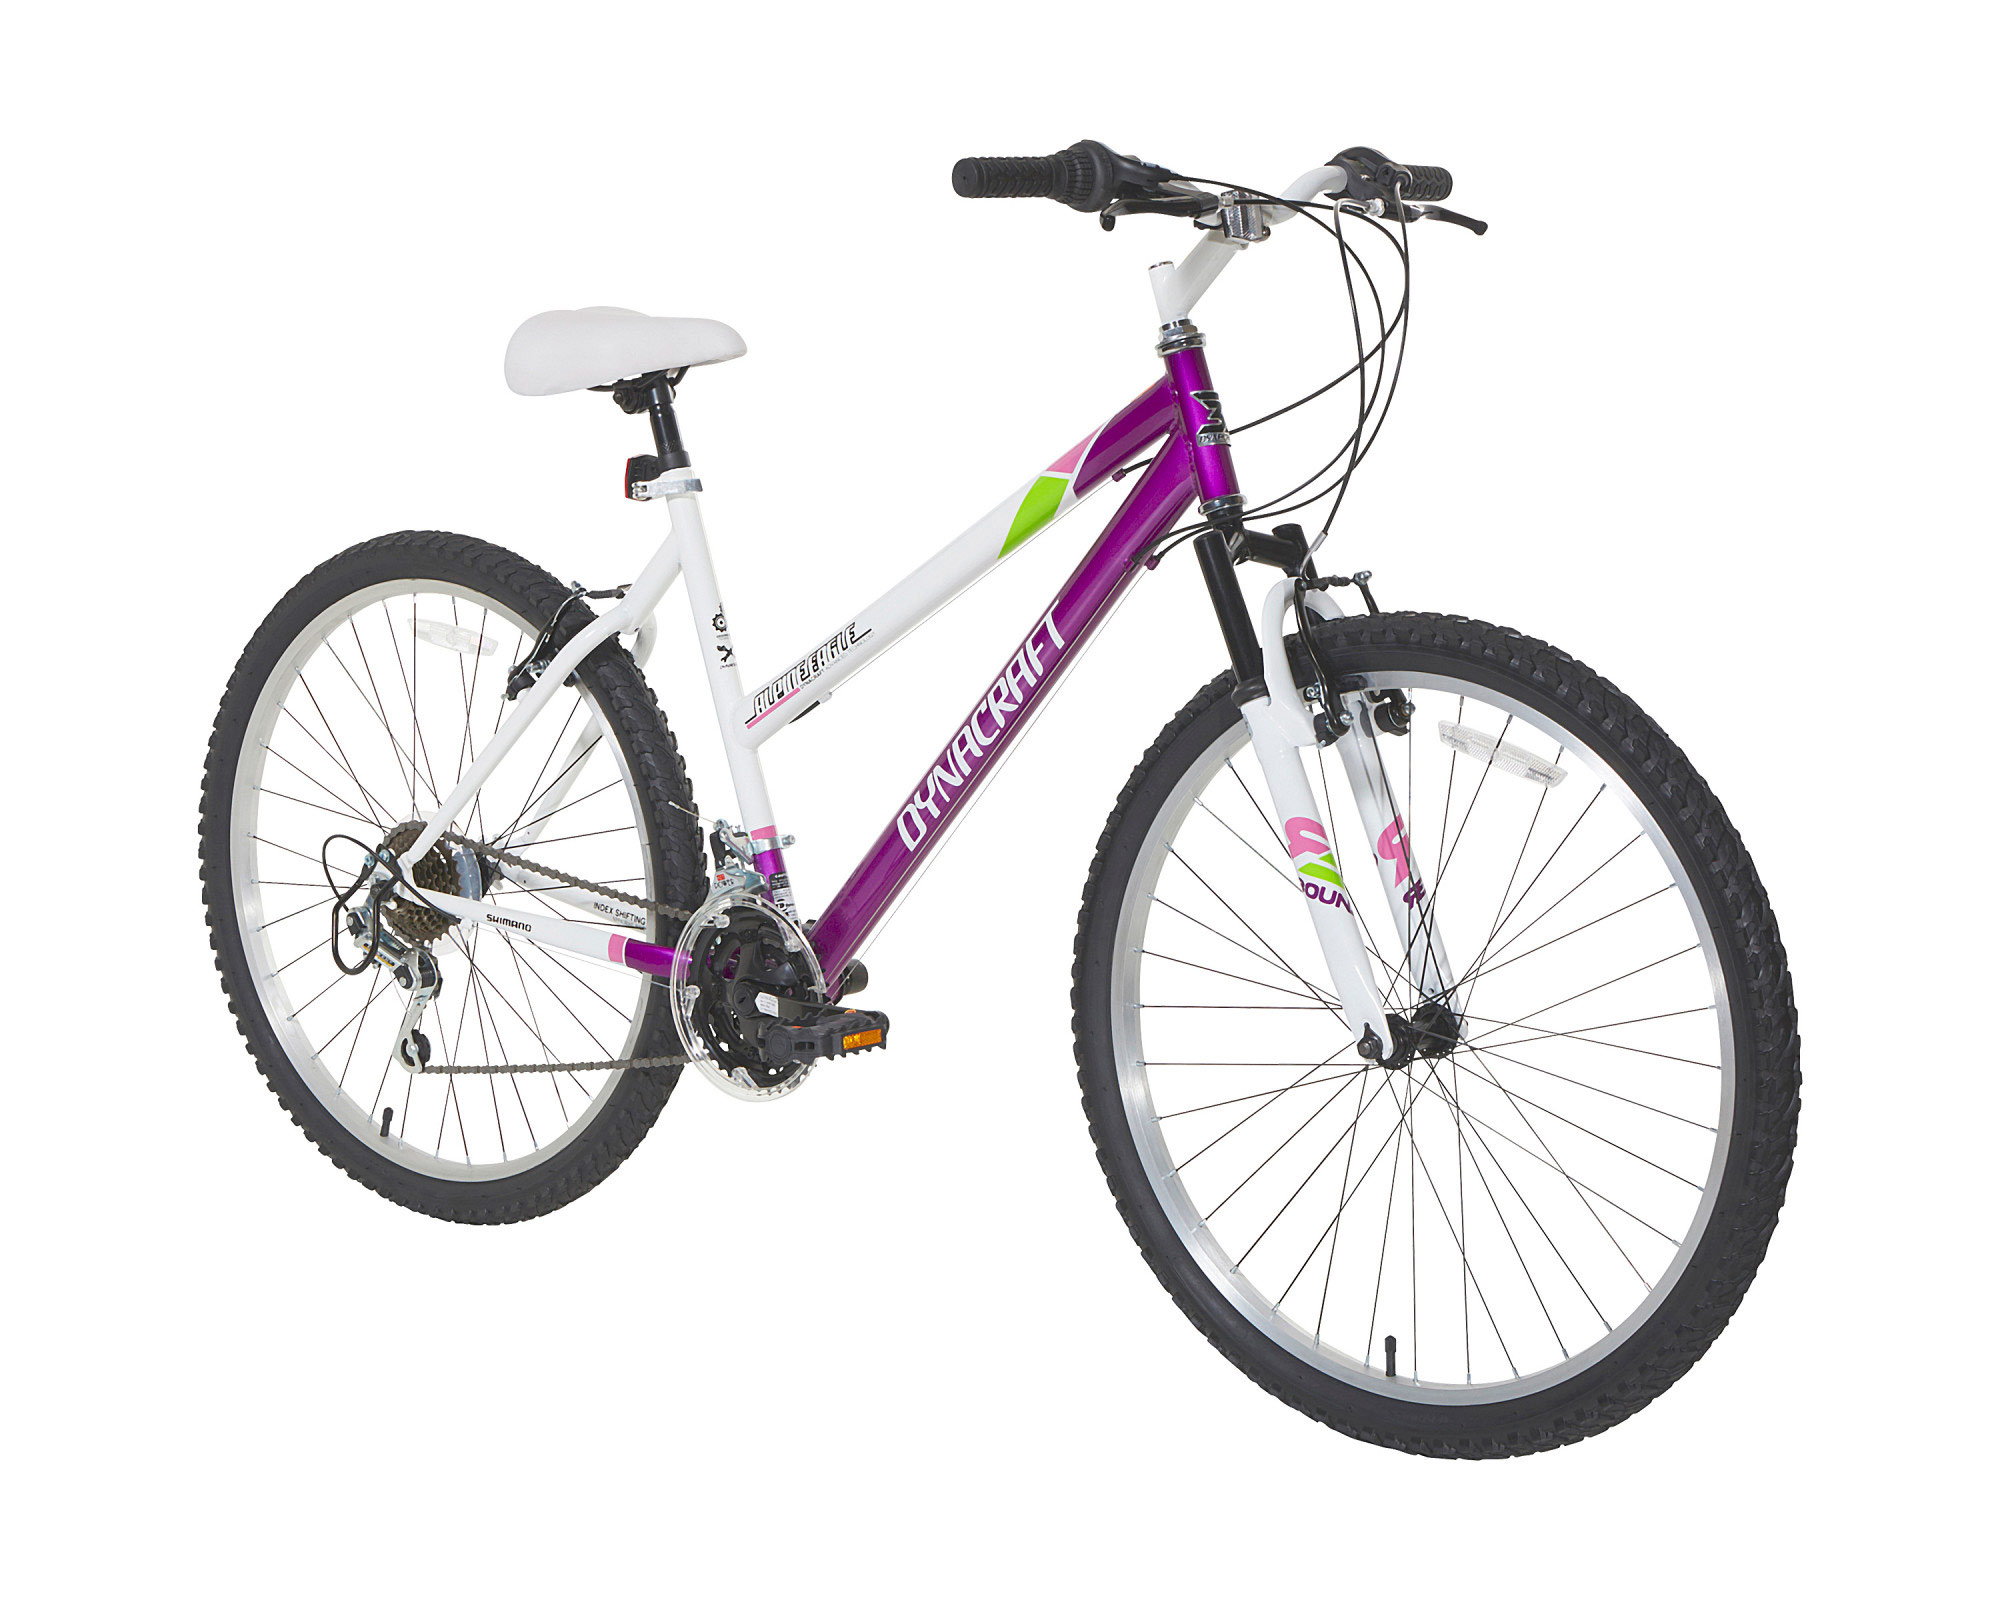 Dynacraft alpine eagle 26 bike